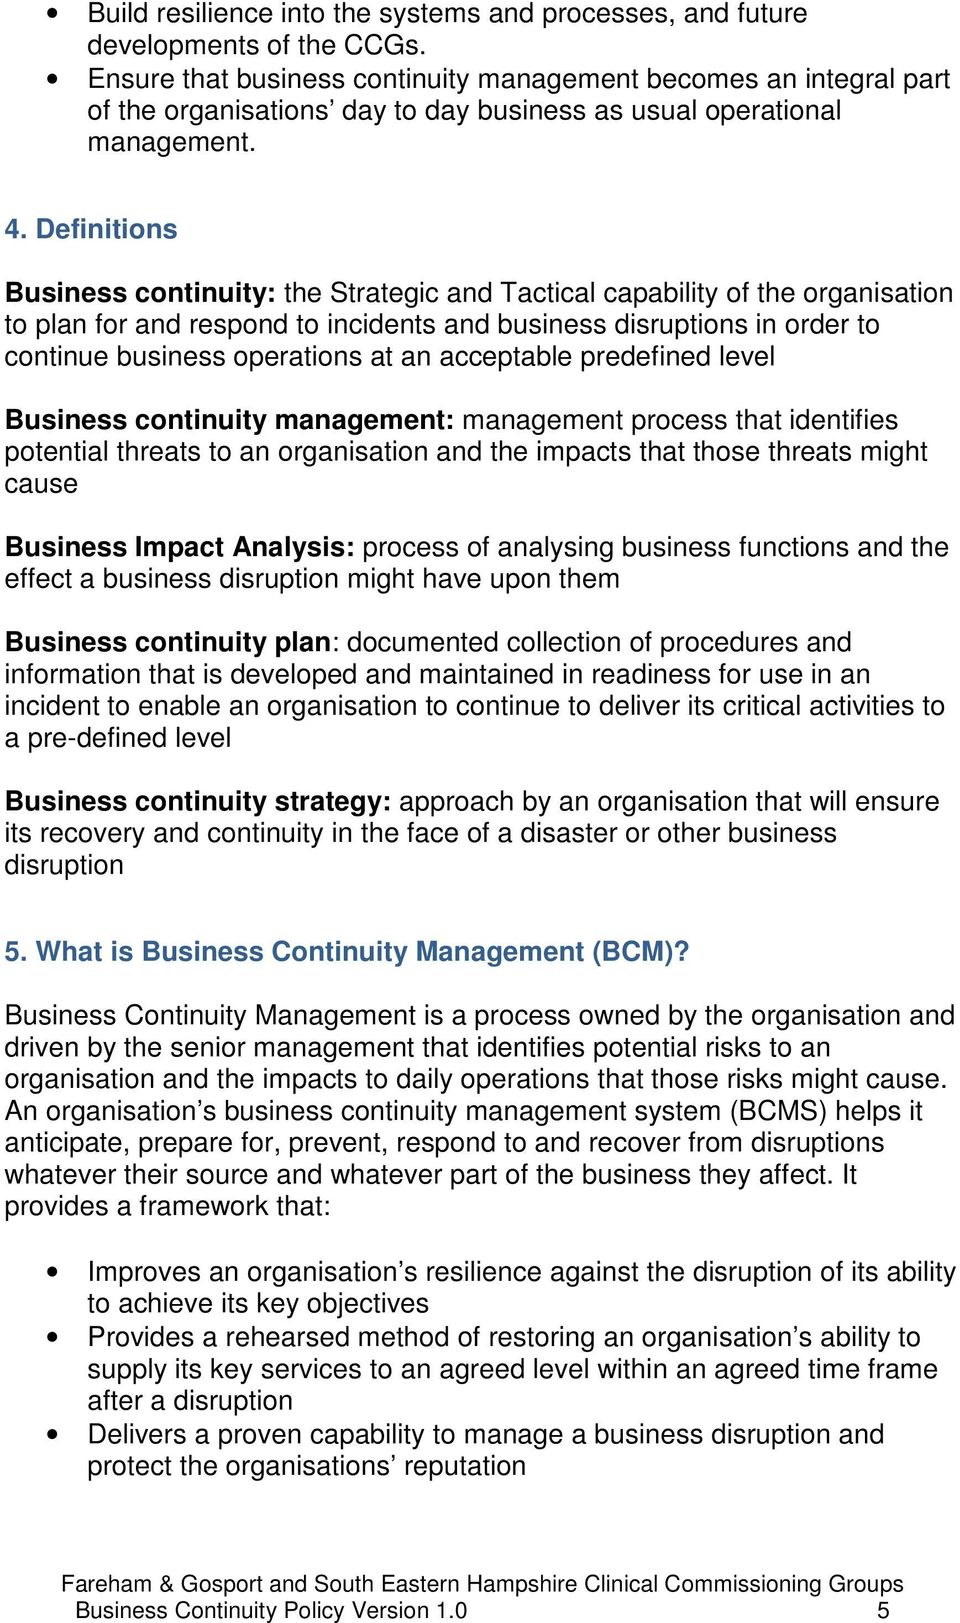 Definitions Business continuity: the Strategic and Tactical capability of the organisation to plan for and respond to incidents and business disruptions in order to continue business operations at an